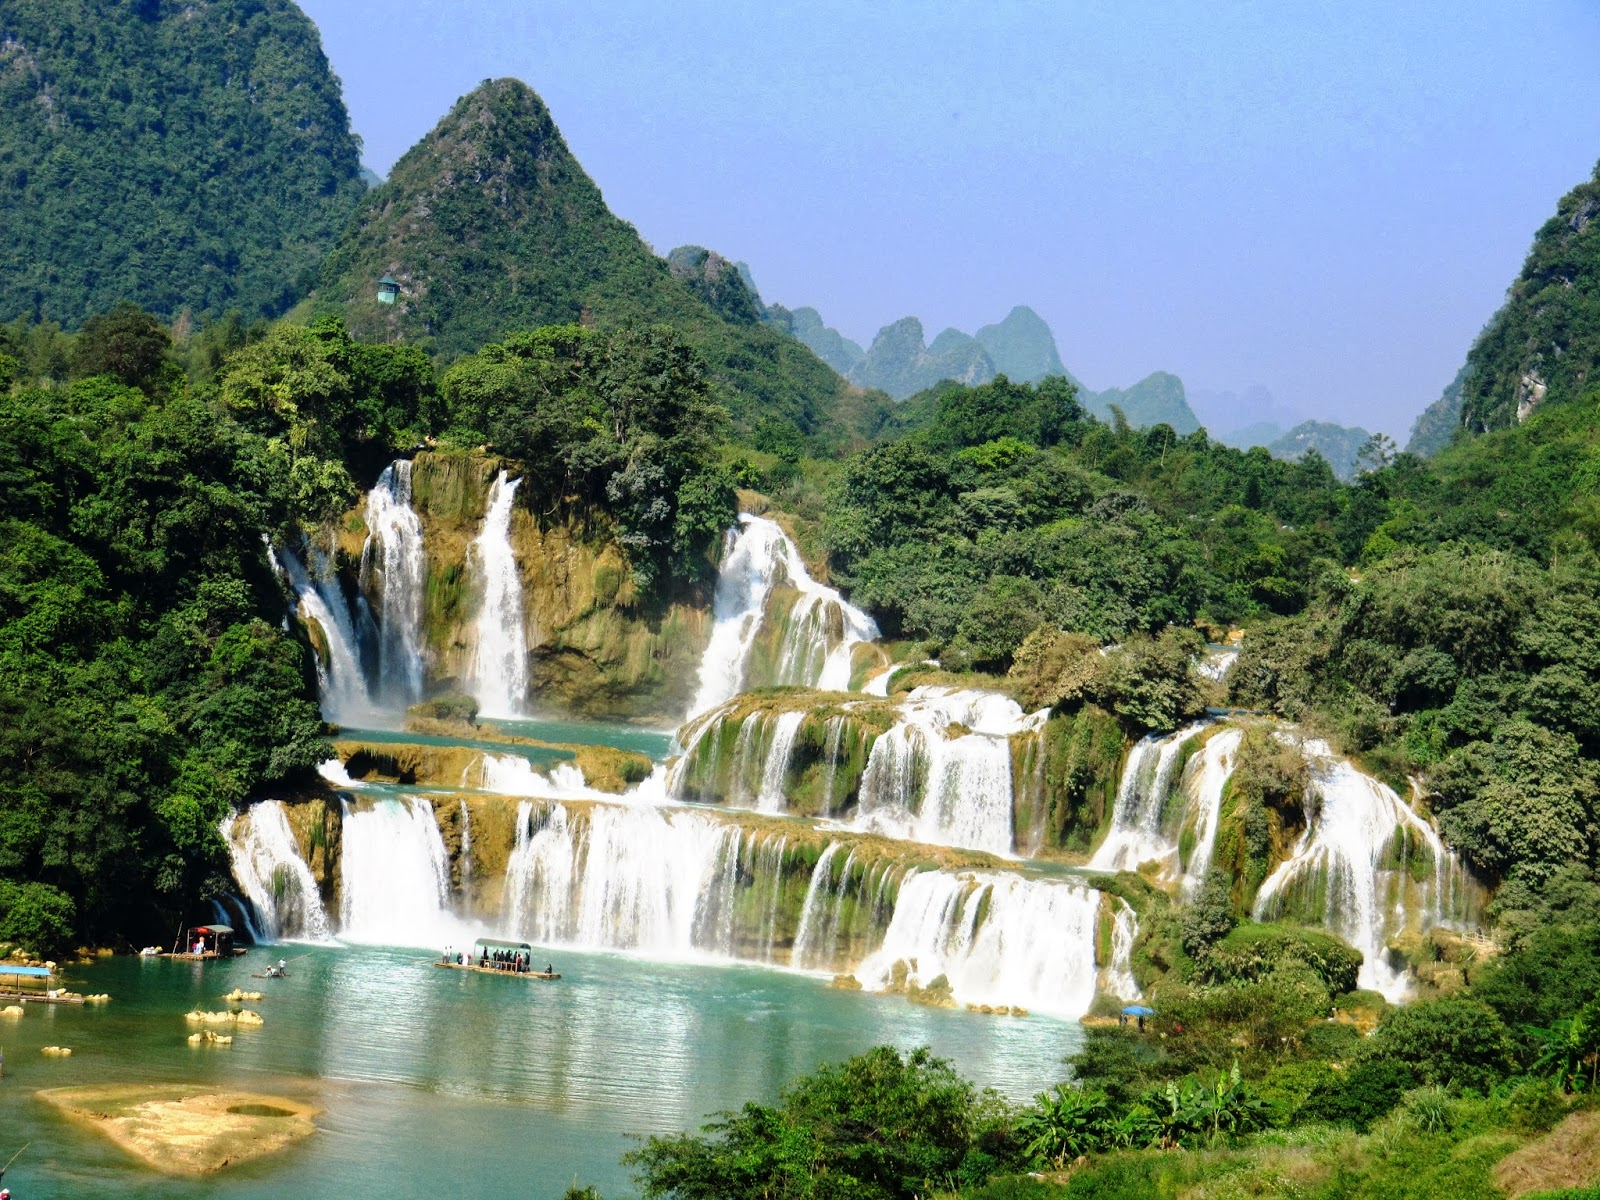 Thai Giang Pho Waterfall The Northwest, The North West tour Ba Be-Ban Gioc-Ha Giang-Sapa, 11 days 10 ...